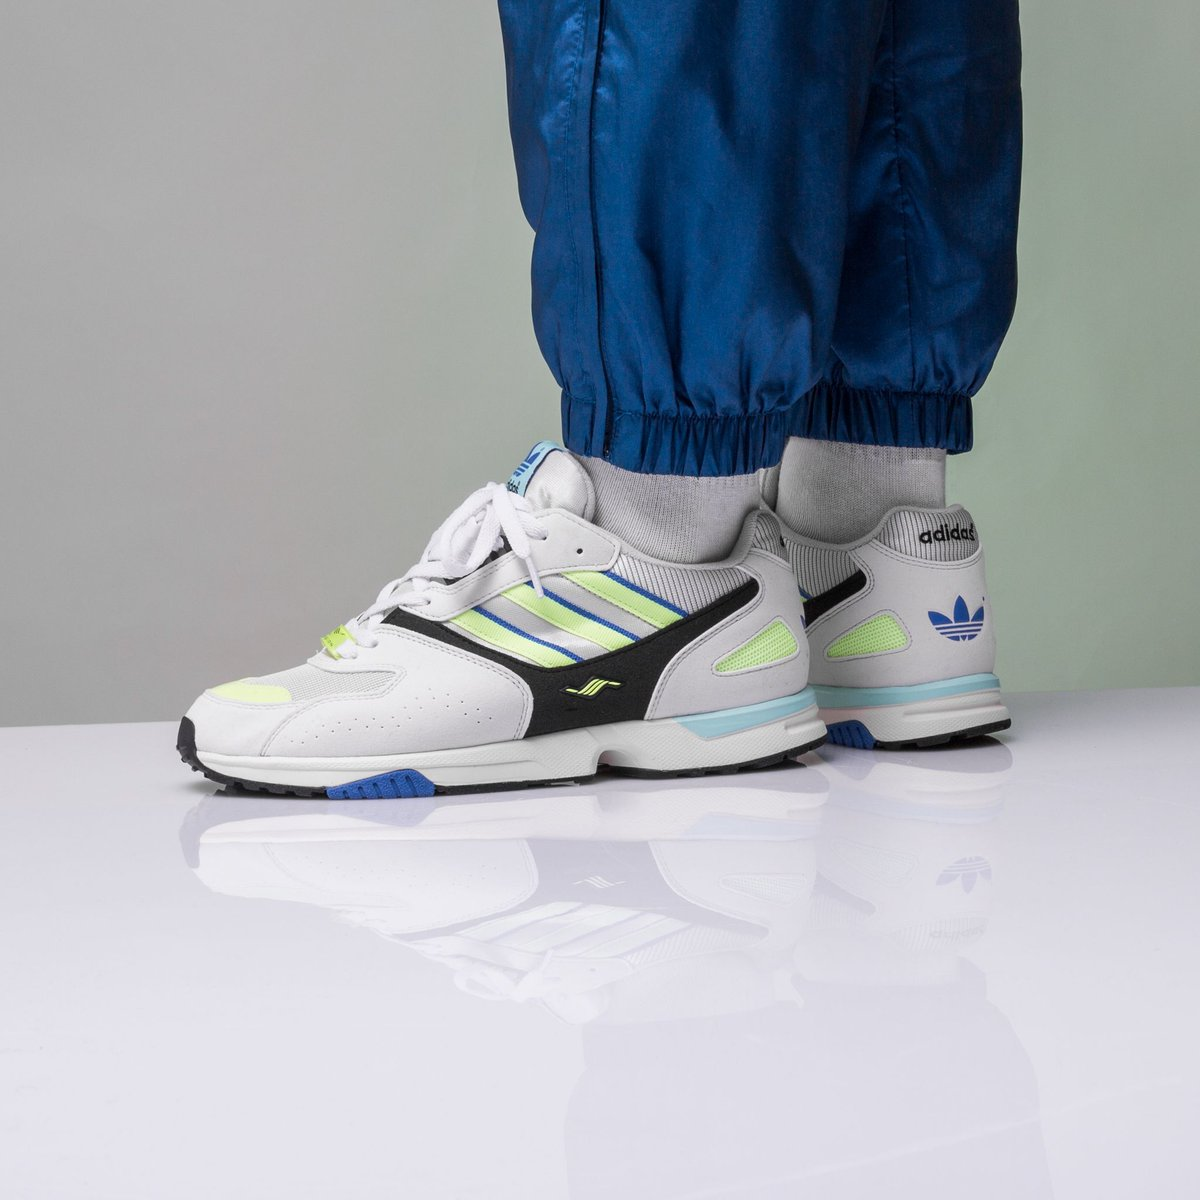 d1aca01034c NEW IN ! Adidas Zx 4000 - Crystal White/Sesoye/Core Black online now ...